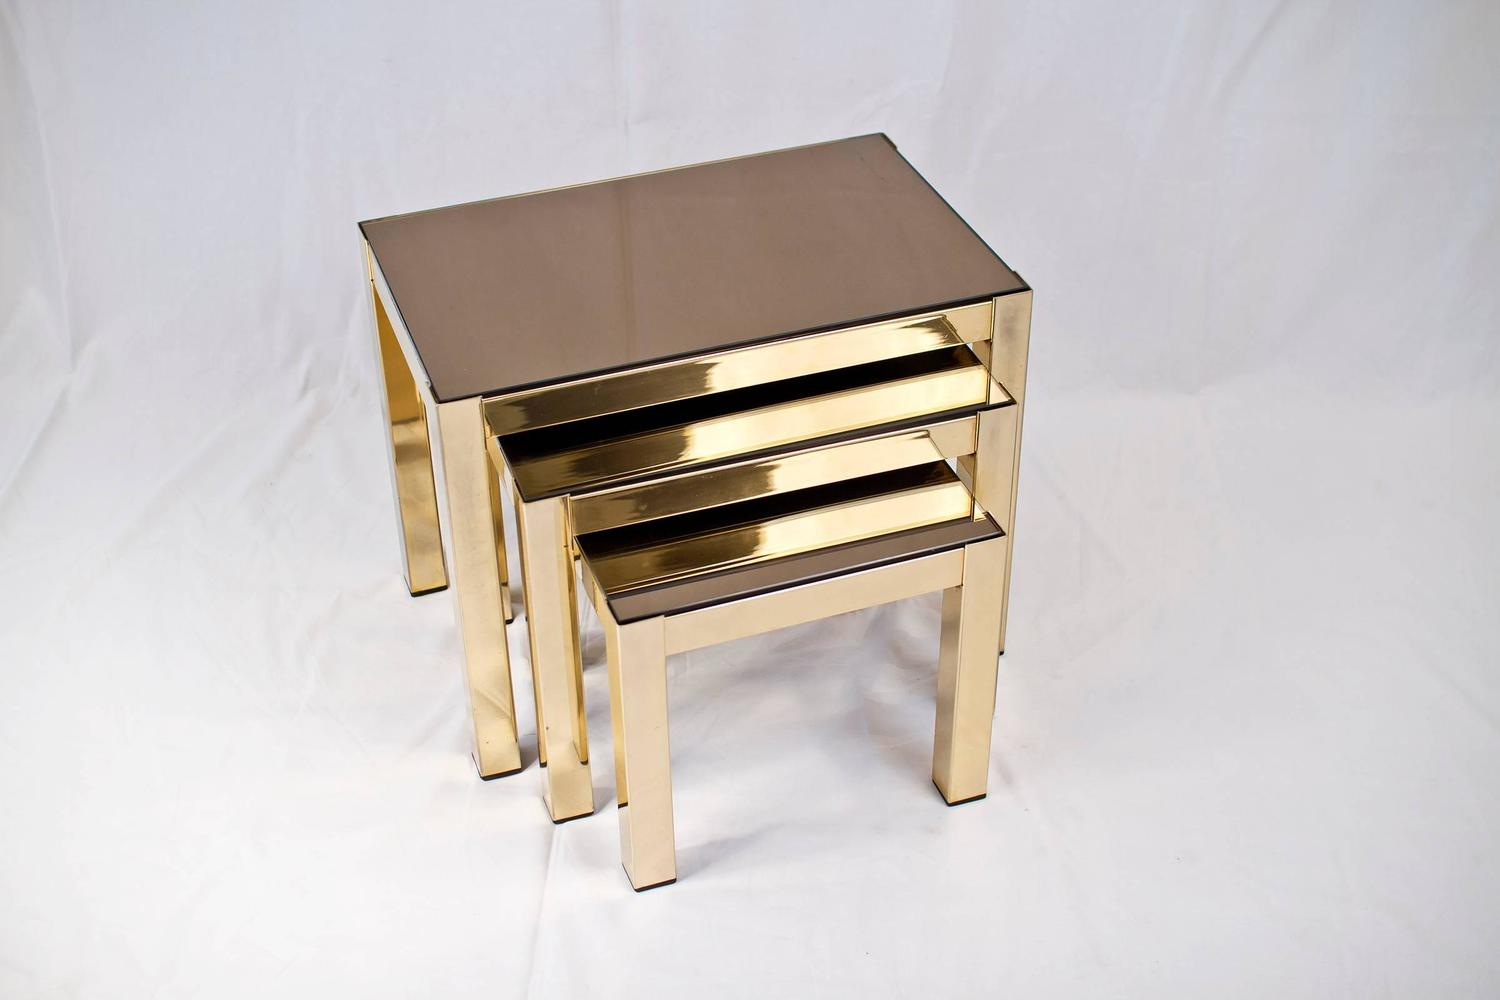 Rare 23 Carat Gold Plated Nesting Tables With Copper Mirror Tops By  Belgochrome